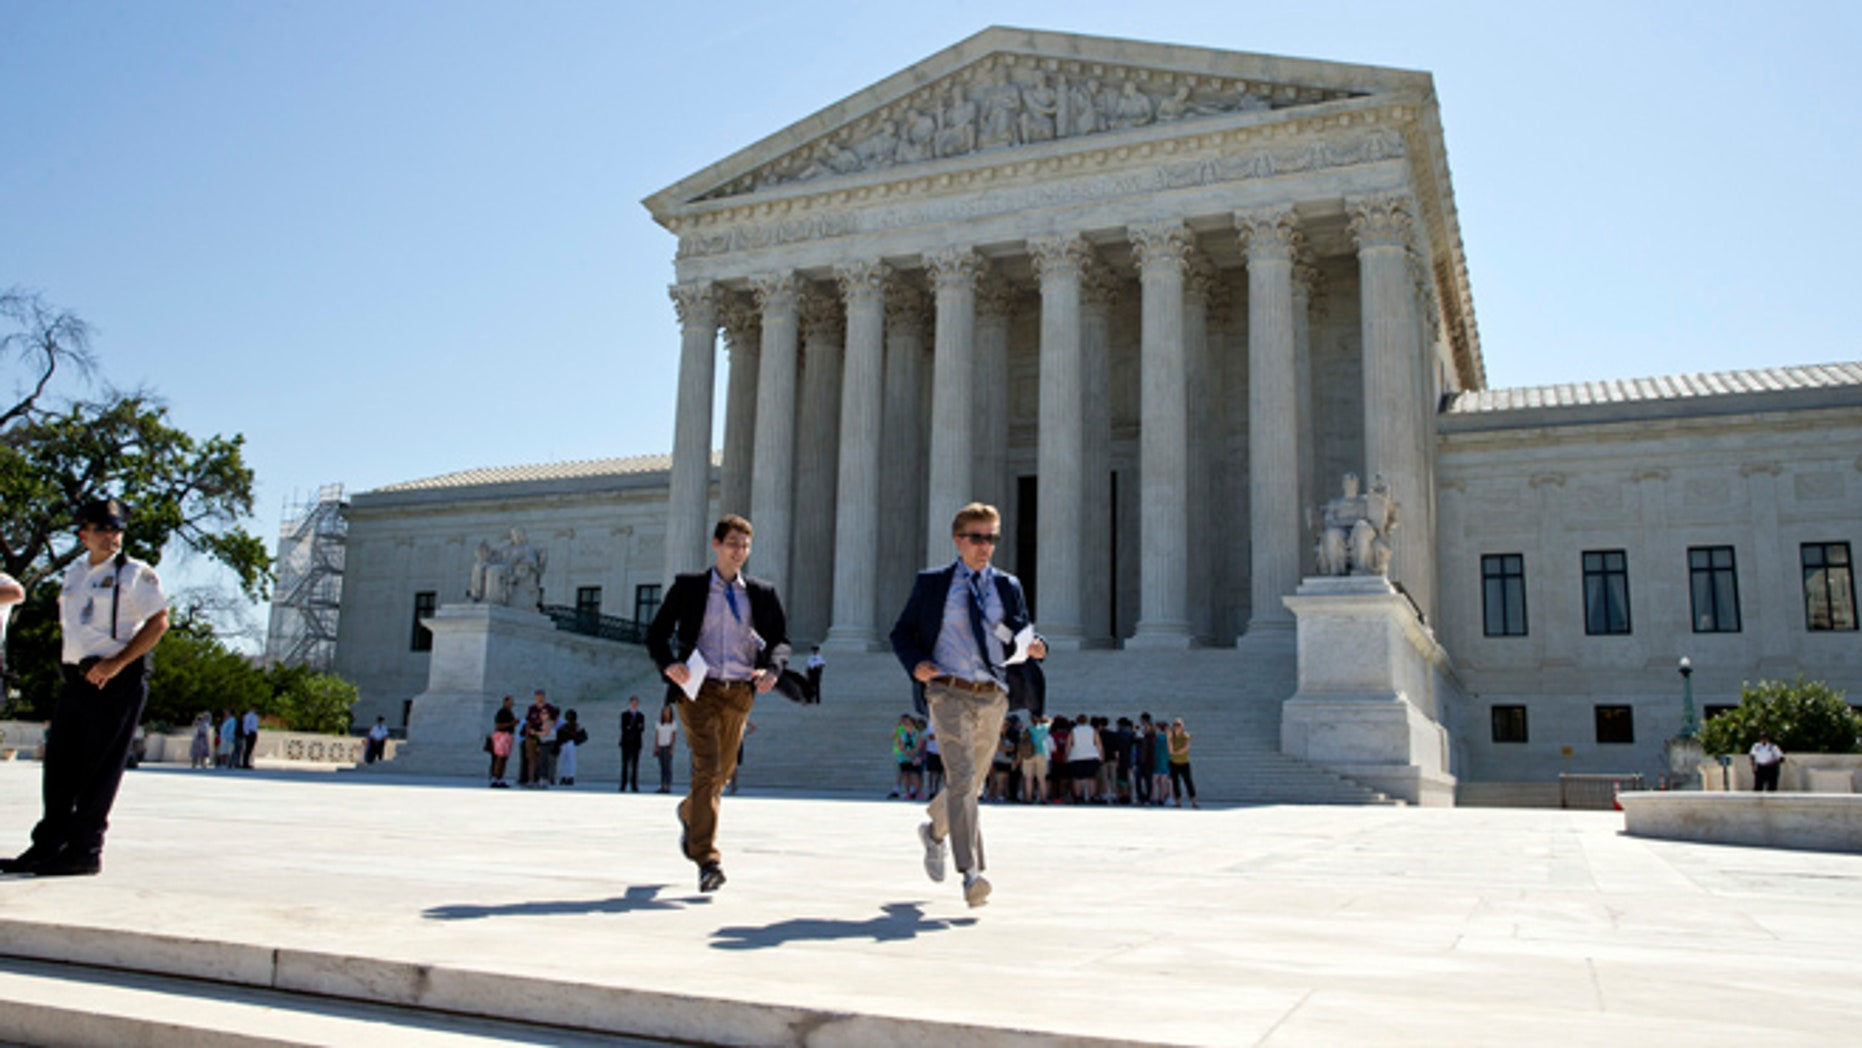 Gregory Briker, left, and John Bat, both with CBS News, run from the Supreme Court in Washington, Monday, June 20, 2016, with papers announcing court decisions. (AP Photo/Alex Brandon)